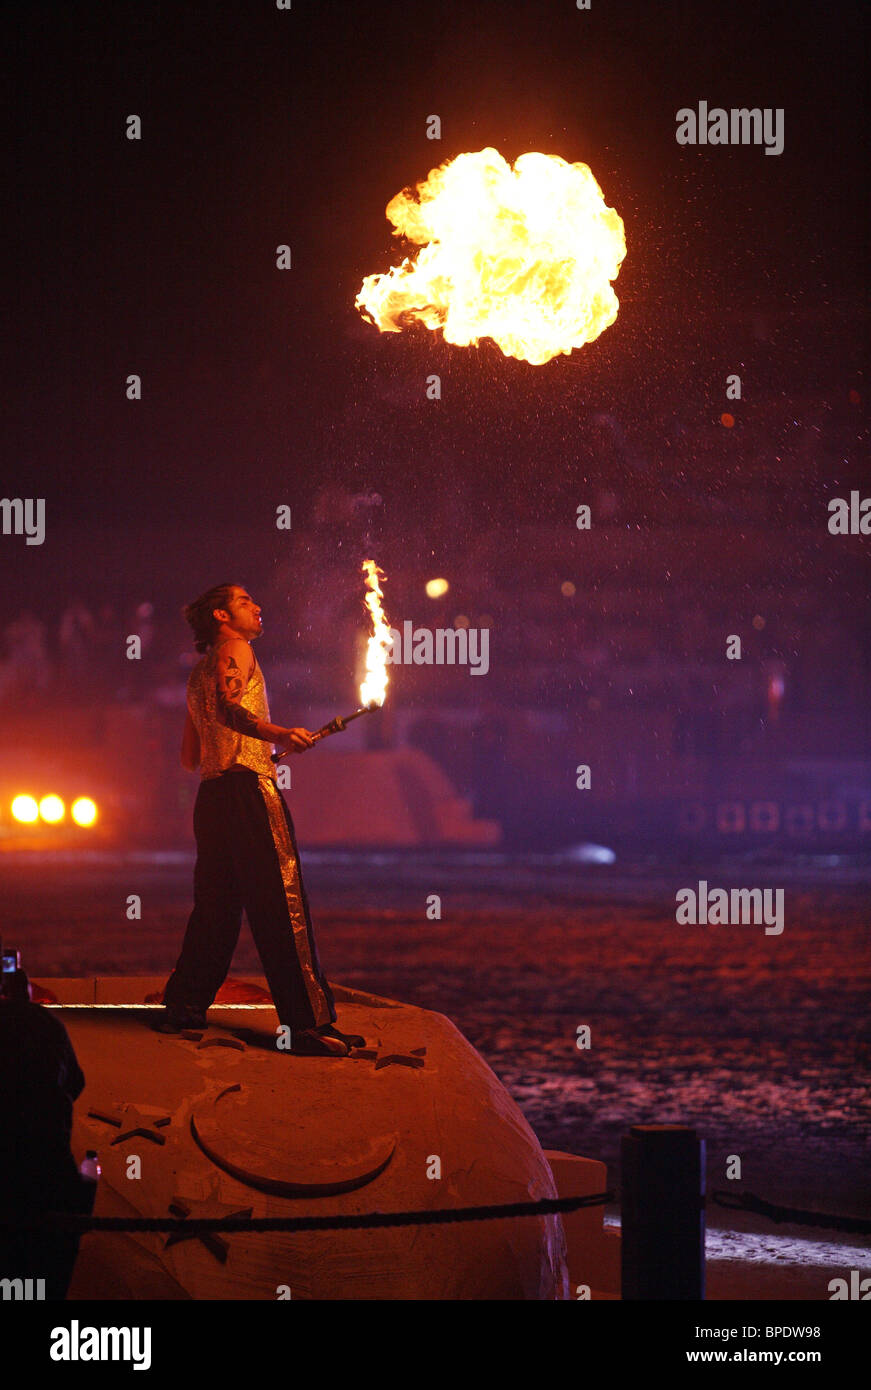 A fire-breather in action, Dubai, United Arab Emirates - Stock Image